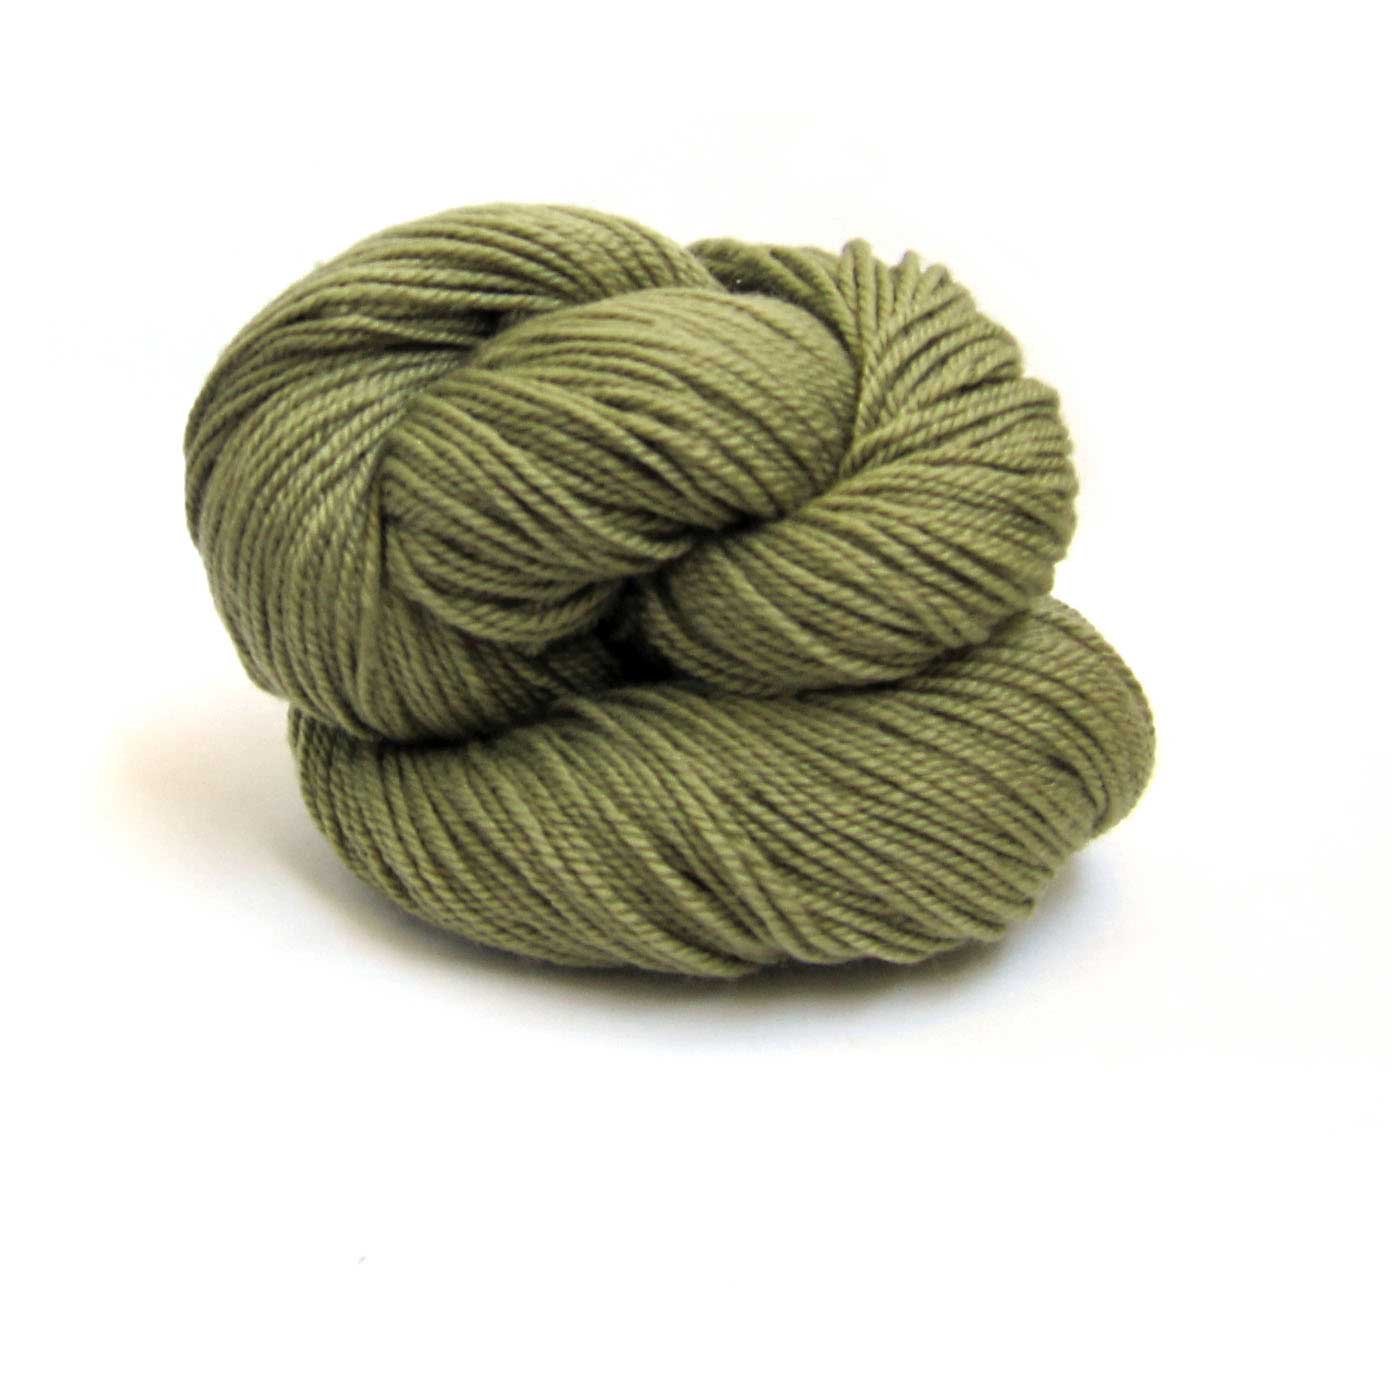 Olive Louet Gems 100% Merino Superwash Yarn